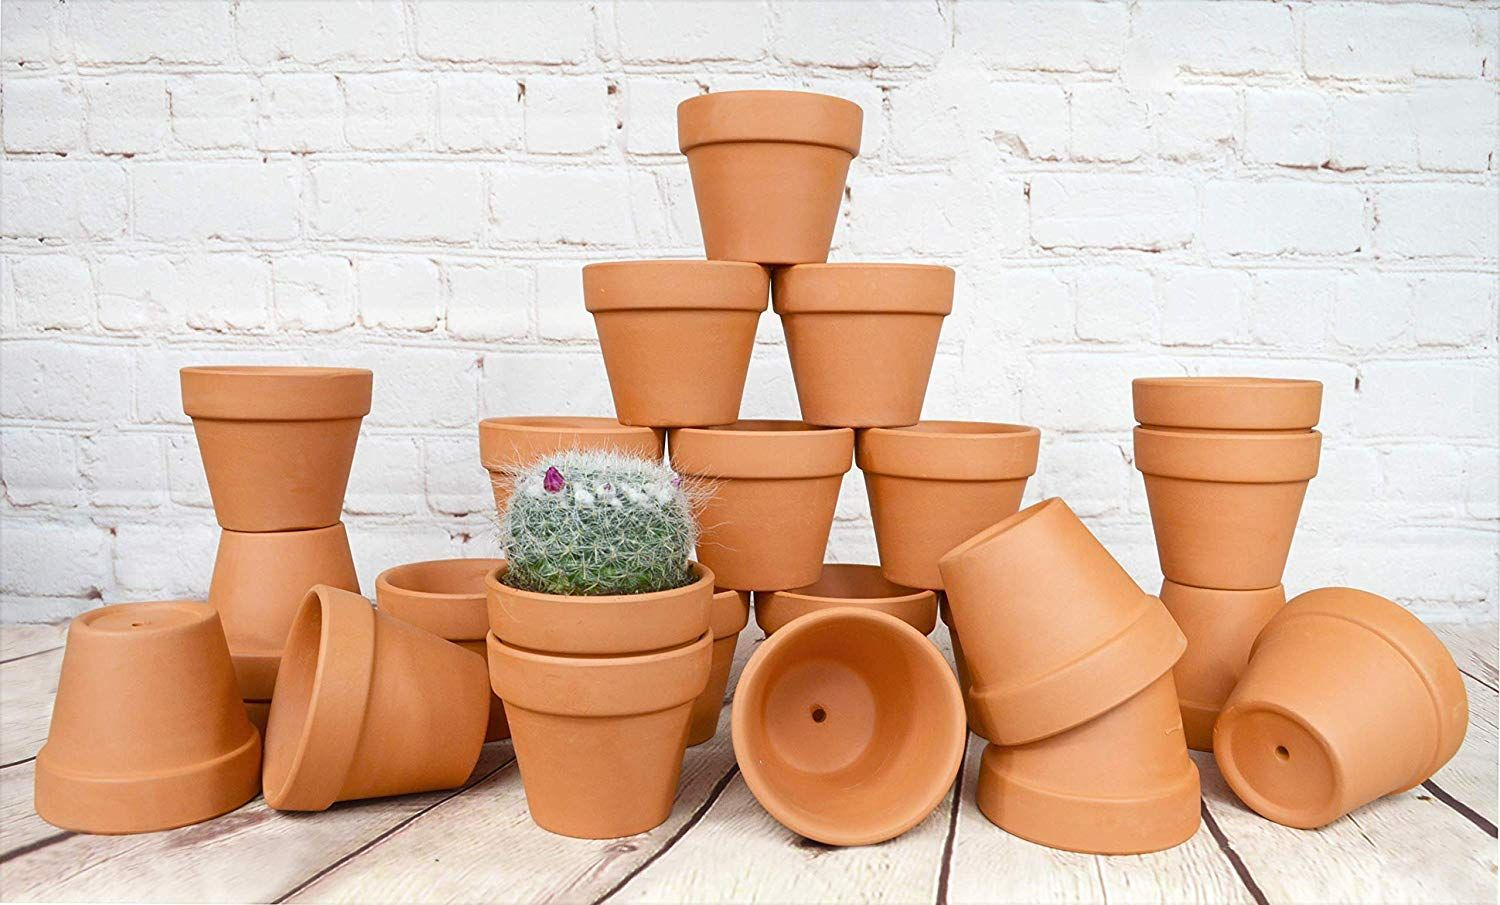 My Urban Crafts 24 Pcs Small Terra Cotta Pots 2 5 X 3 Inch Mini Flower Clay Pots With Drainage Hole Ceramic Pottery Nursery Terracotta Planter For Succulent Cac In 2020 Small